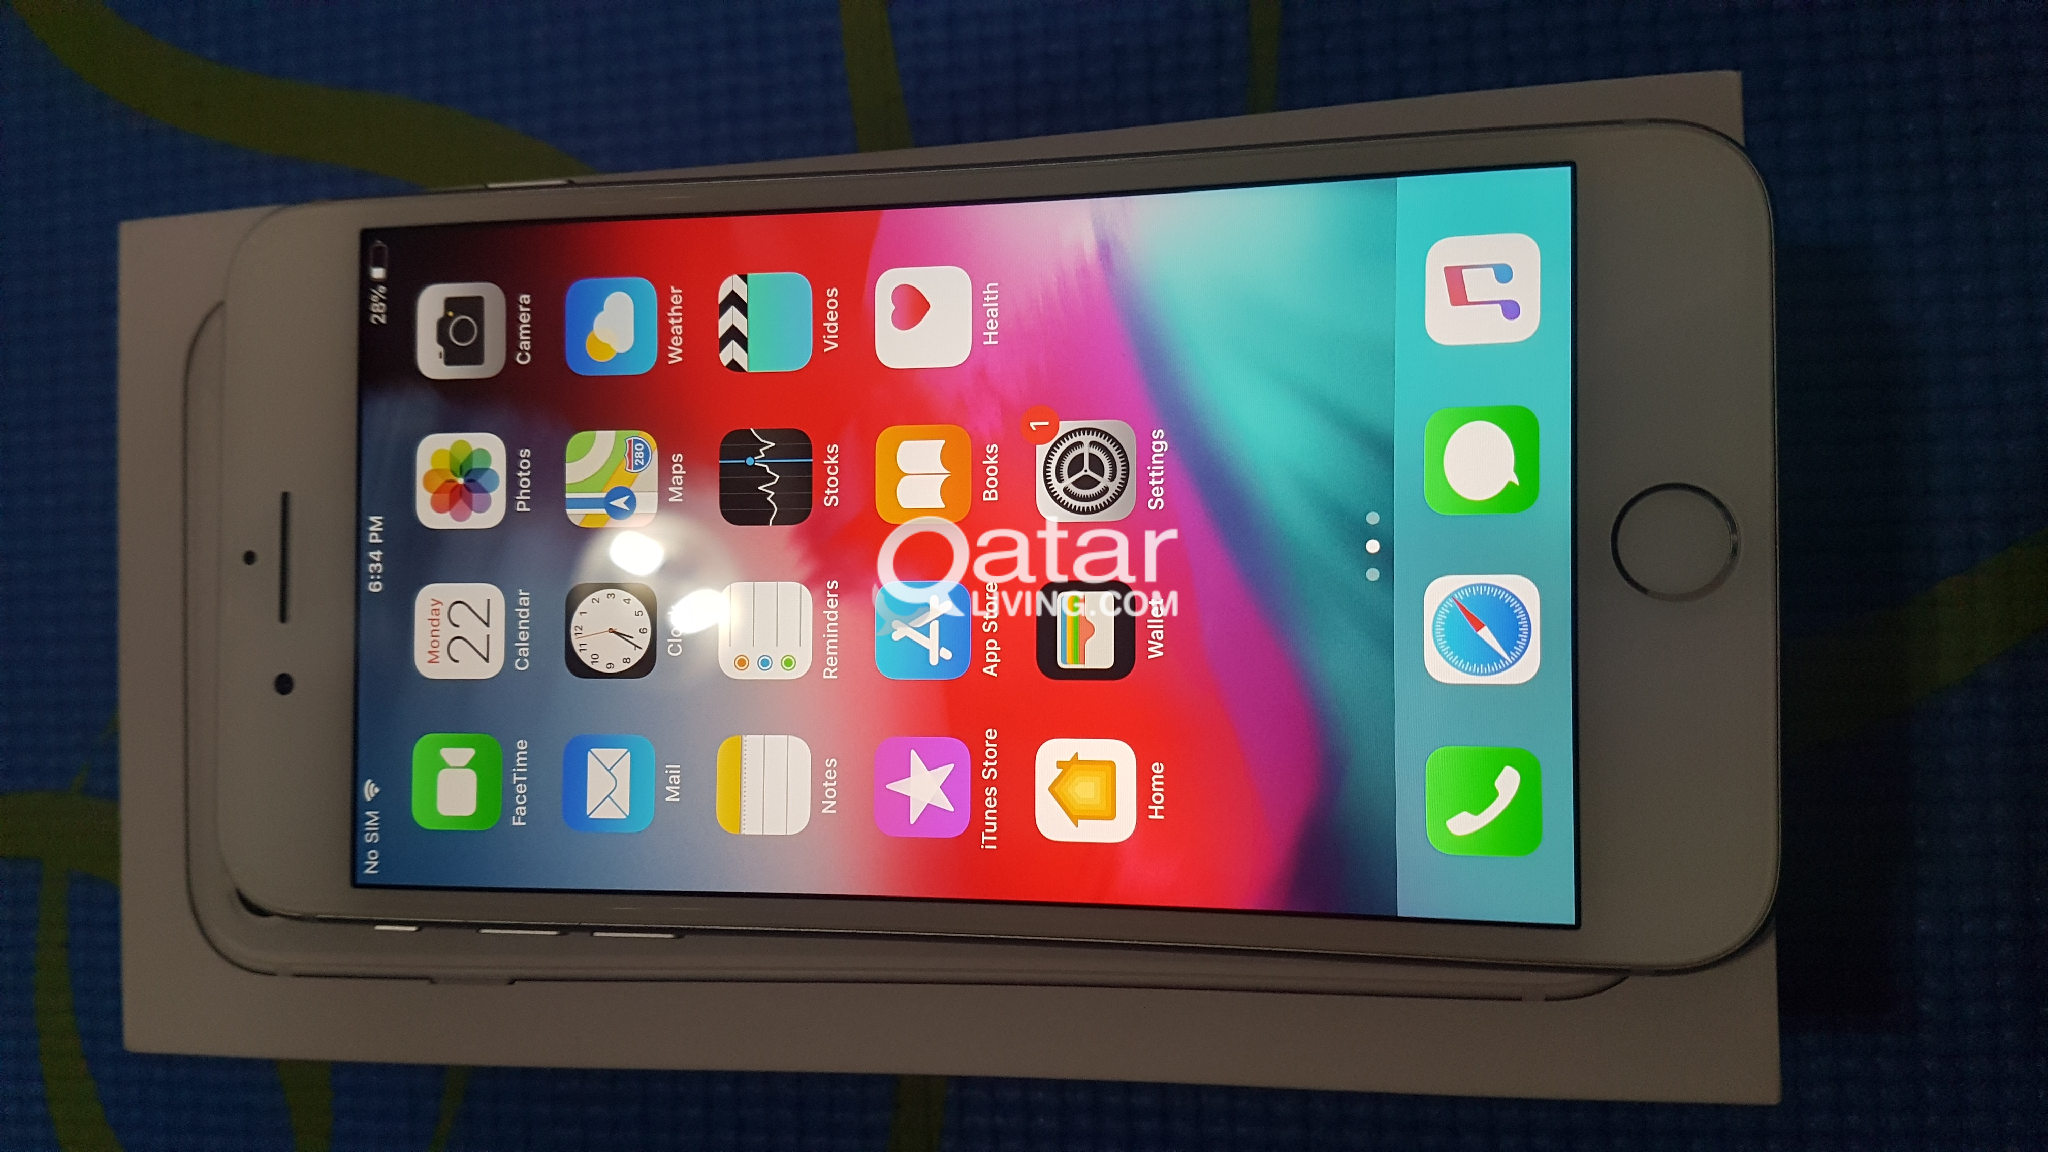 Iphone 8 plus 64GB | Qatar Living